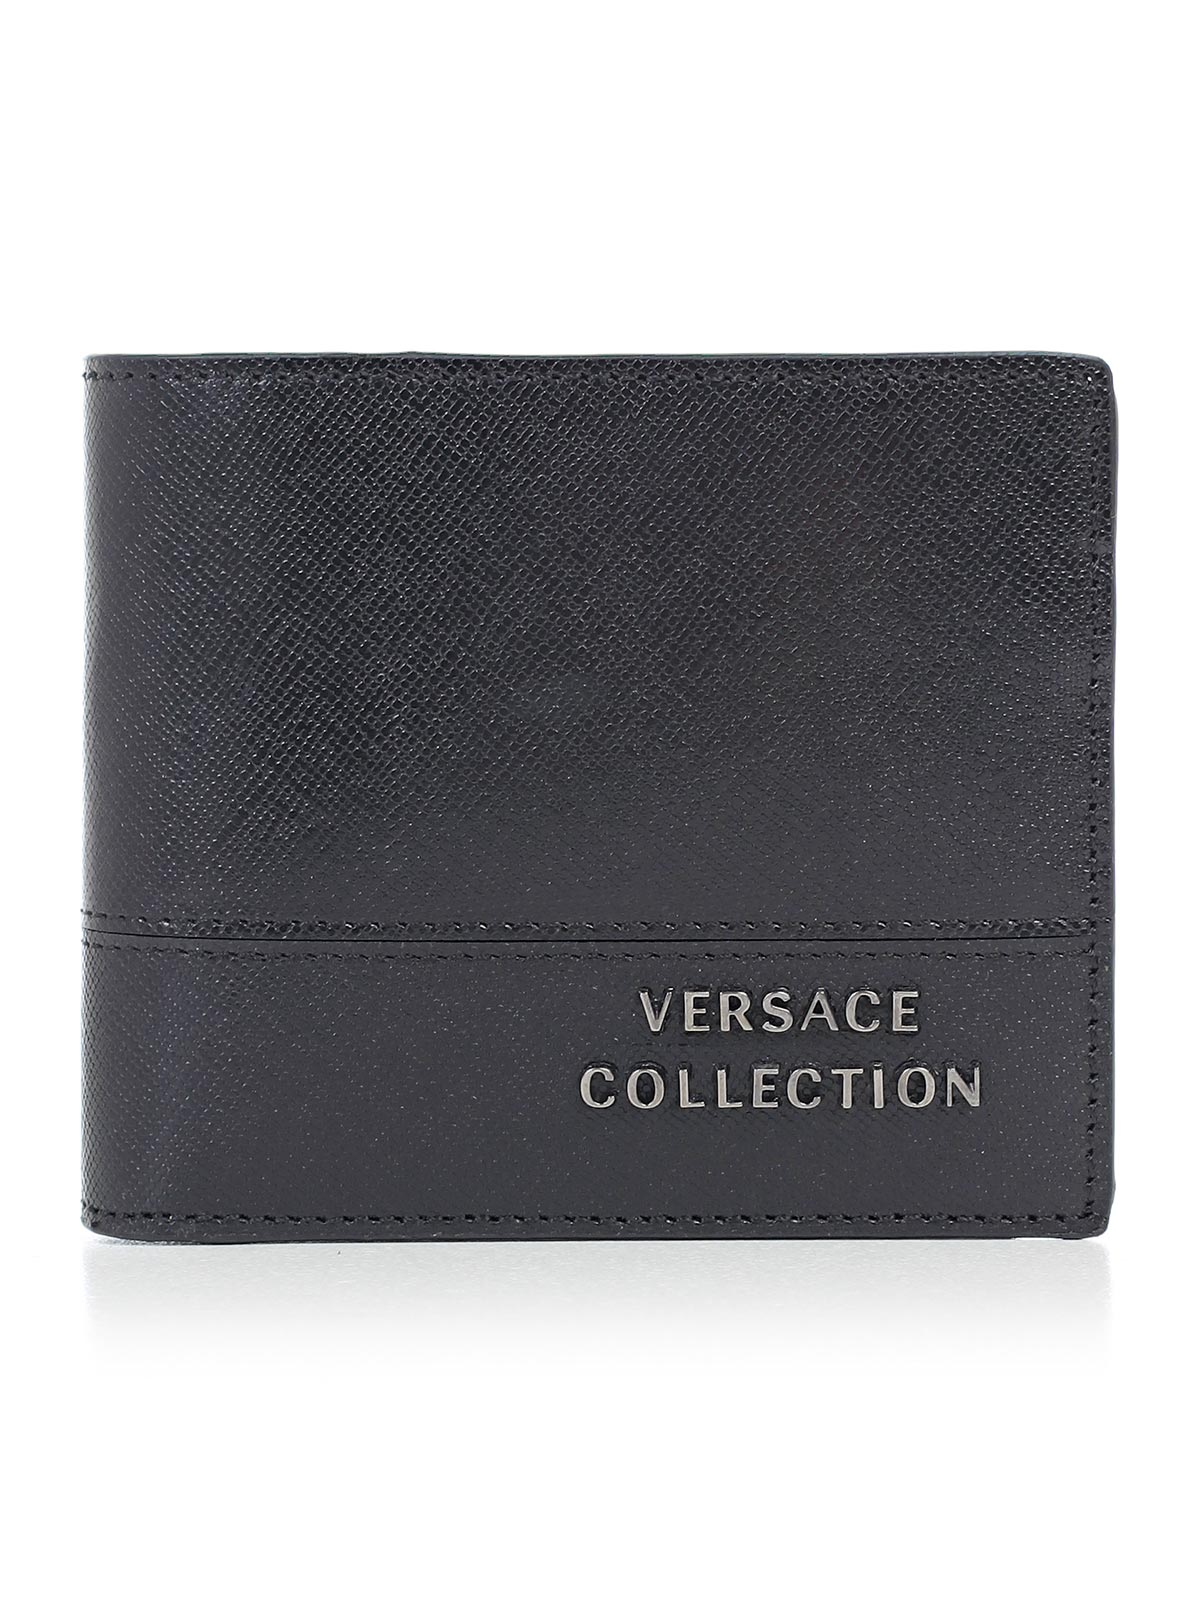 Picture of VERSACE COLLECTION WALLET